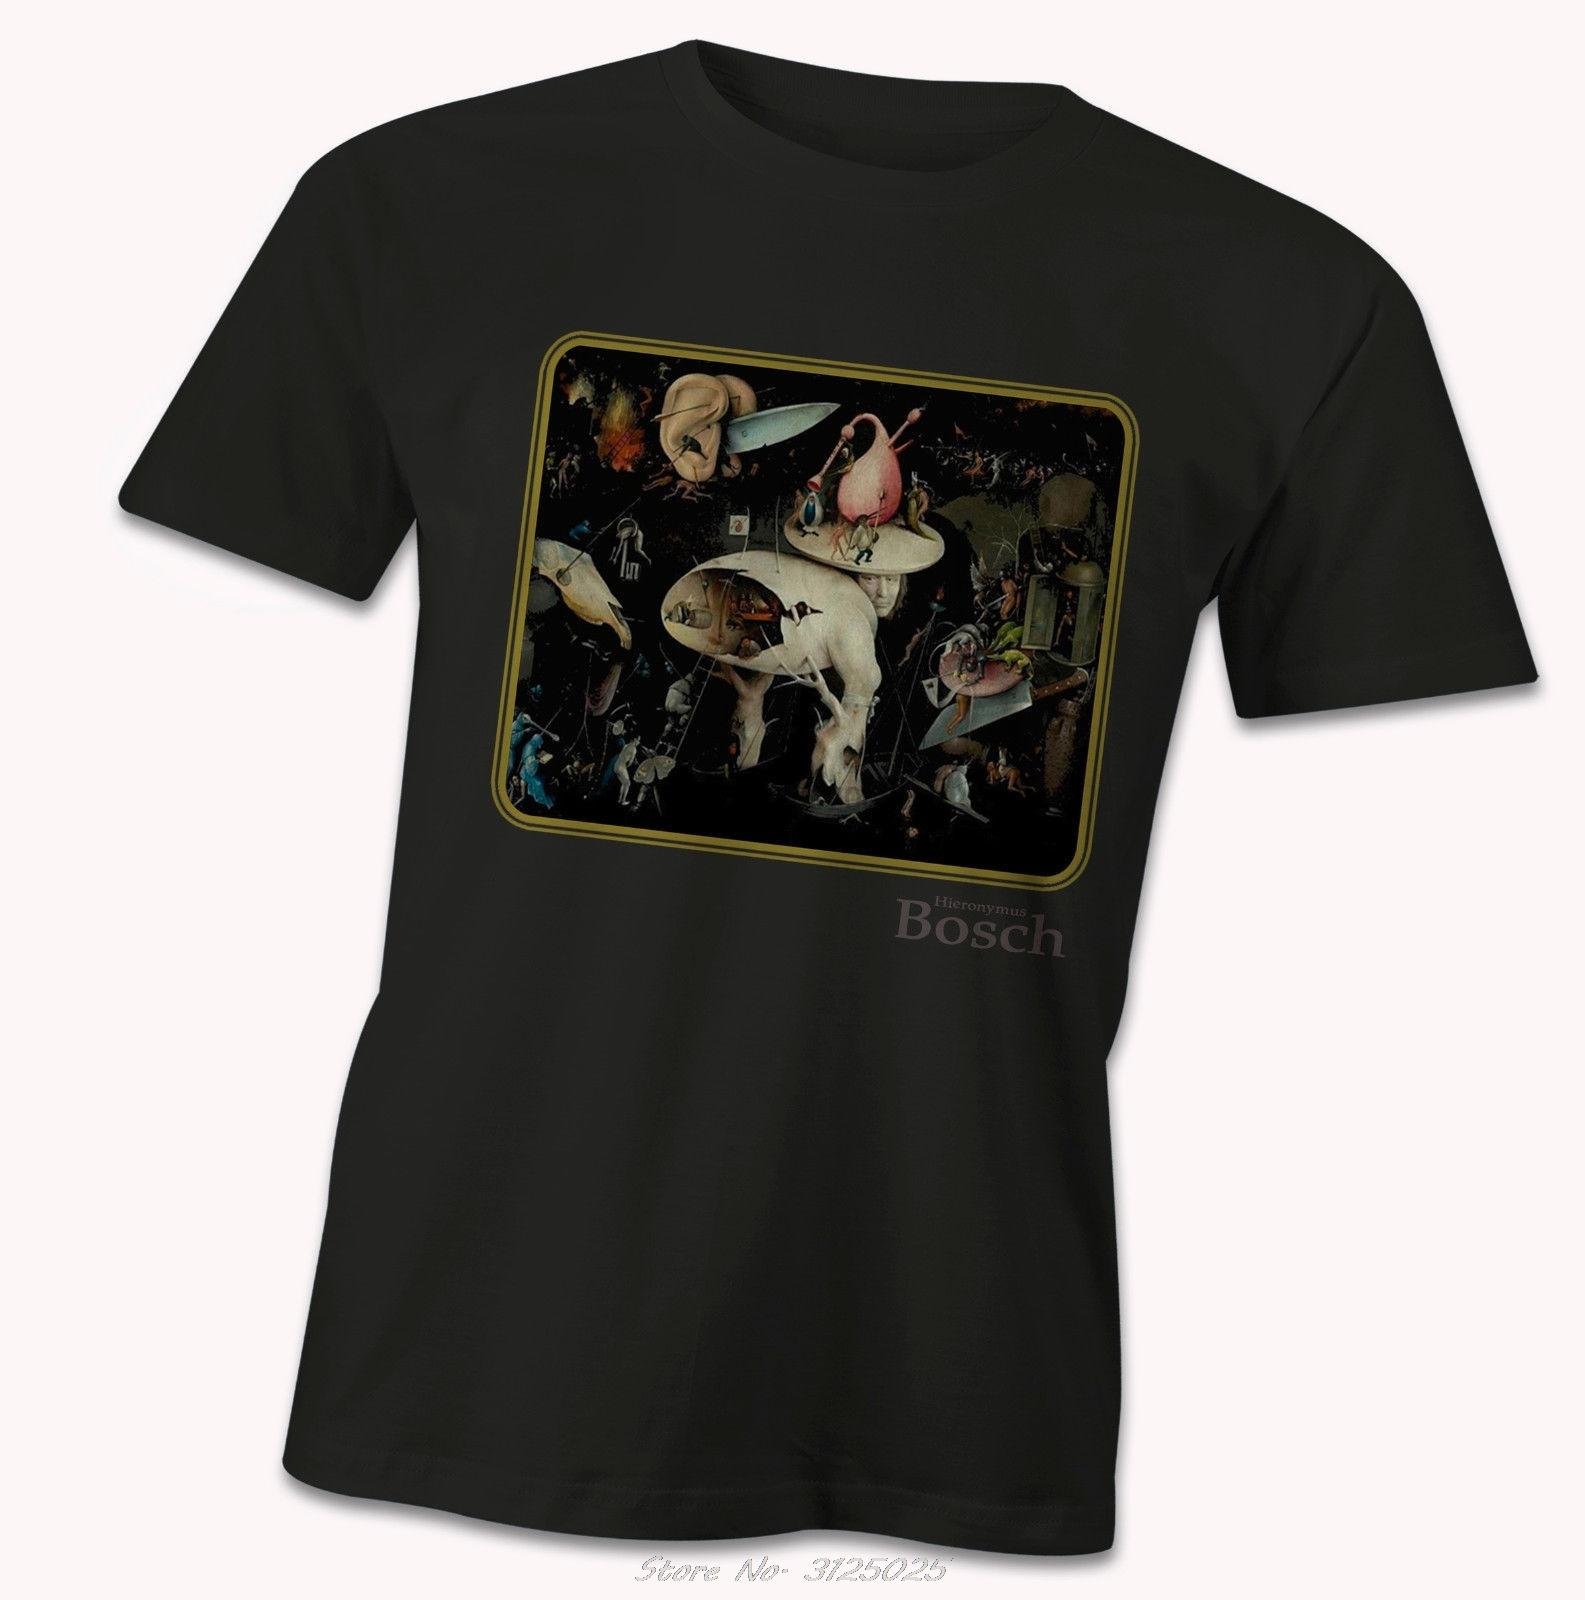 Hieronymus Bosch T-shirt Jardin de l'enfer Détail Delights Earthly néerlandais Artiste Cartoon T-shirt unisexe Homme Nouveau mode T-shirt